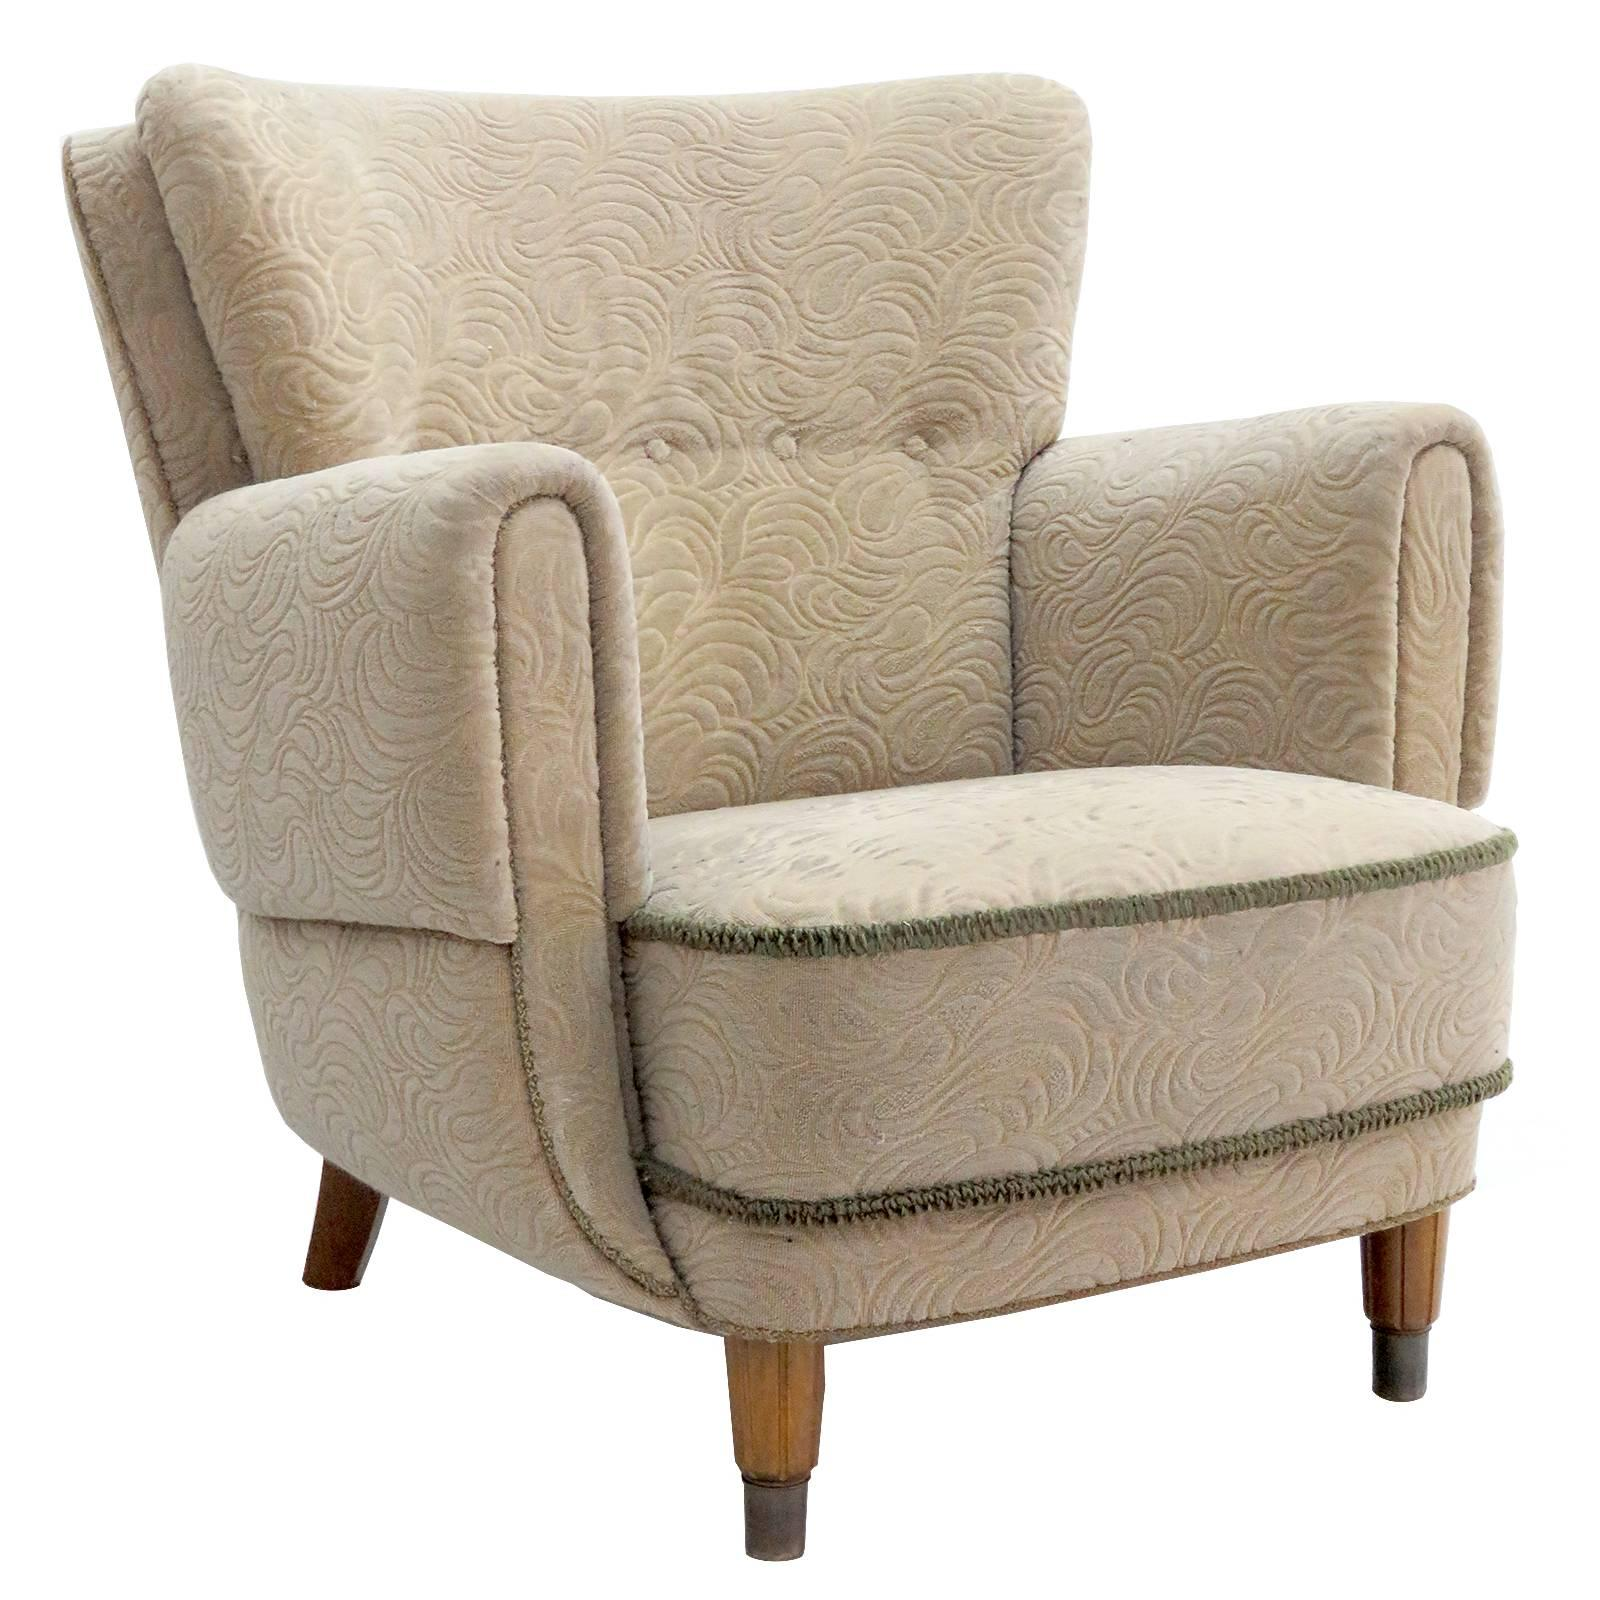 Danish Lounge Chair, 1940s For Sale